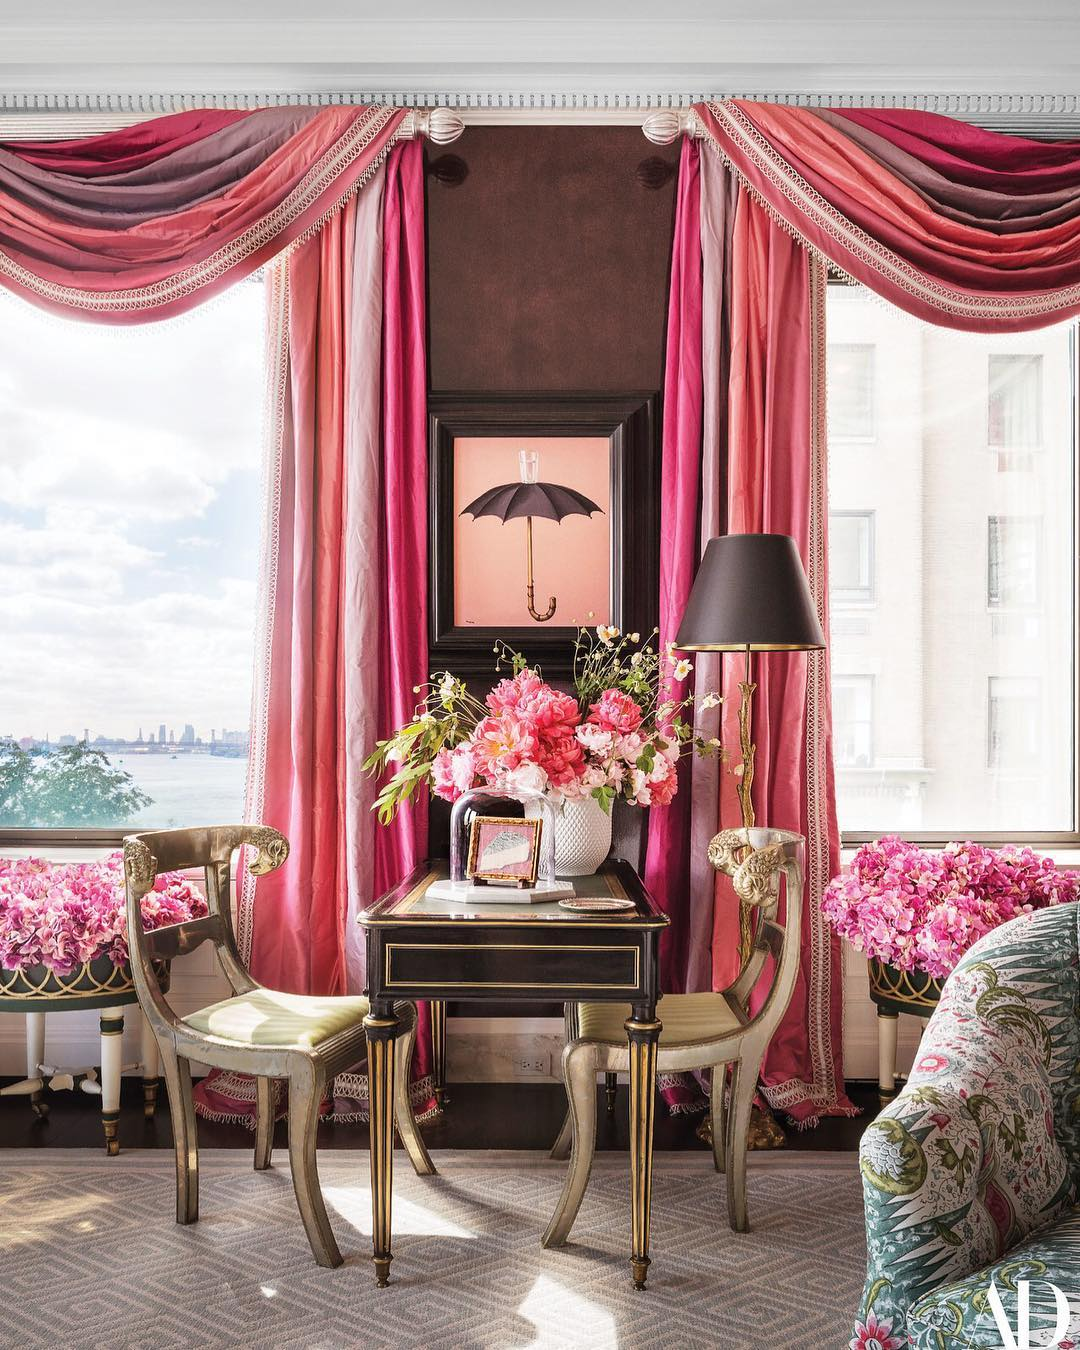 Aesthetic floral home decors